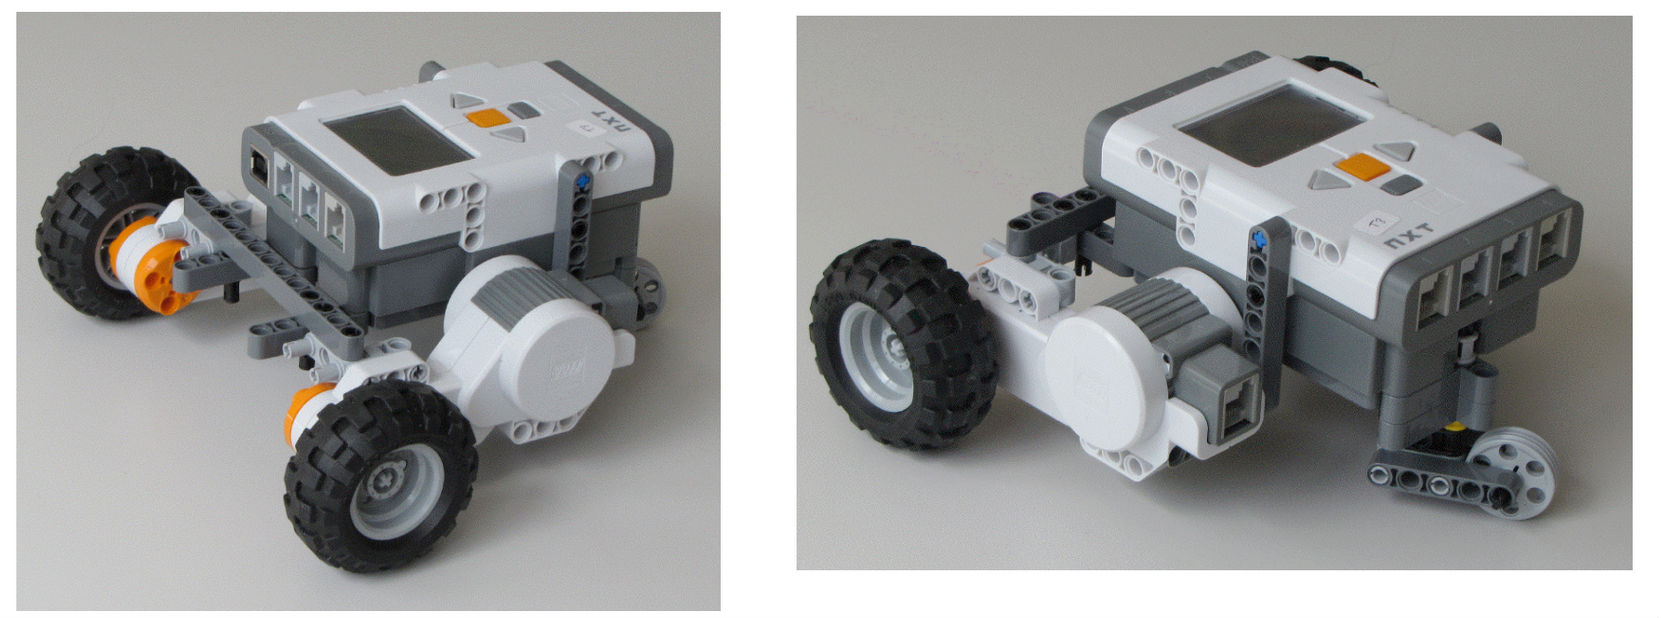 lego nxt robot building instructions